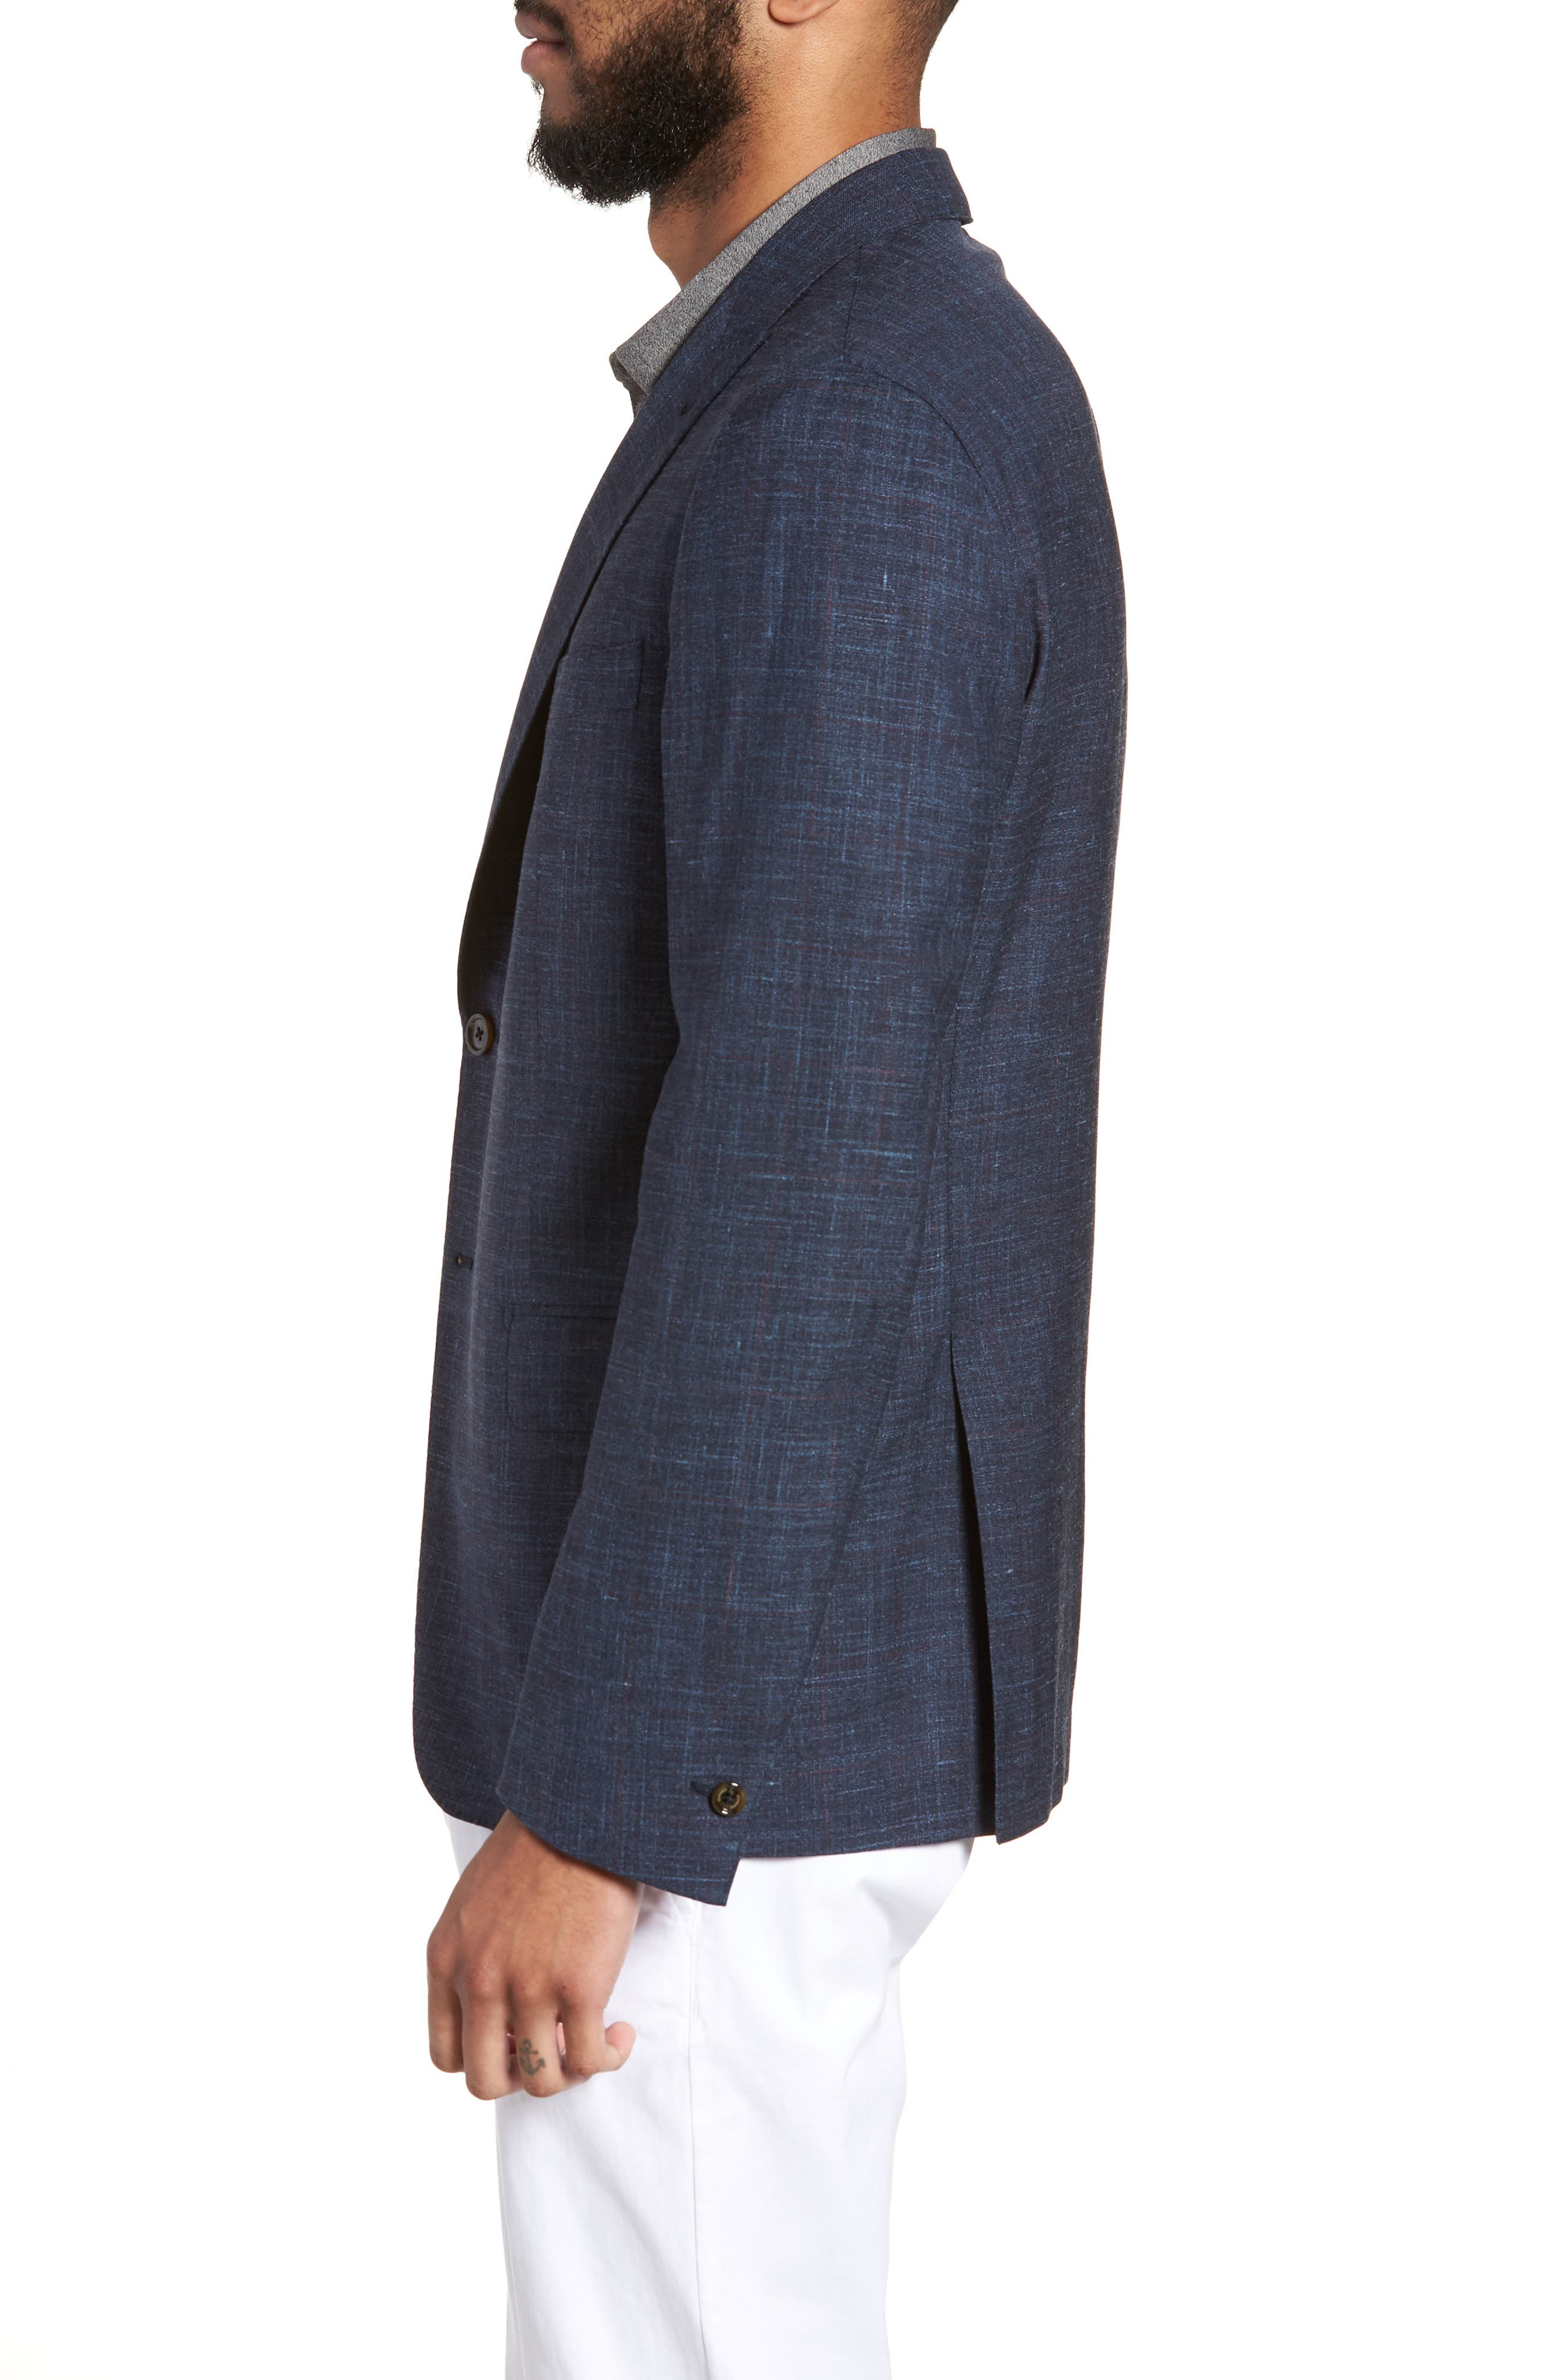 Trim Fit Wool Blend Blazer,                             Alternate thumbnail 3, color,                             Denim Blue